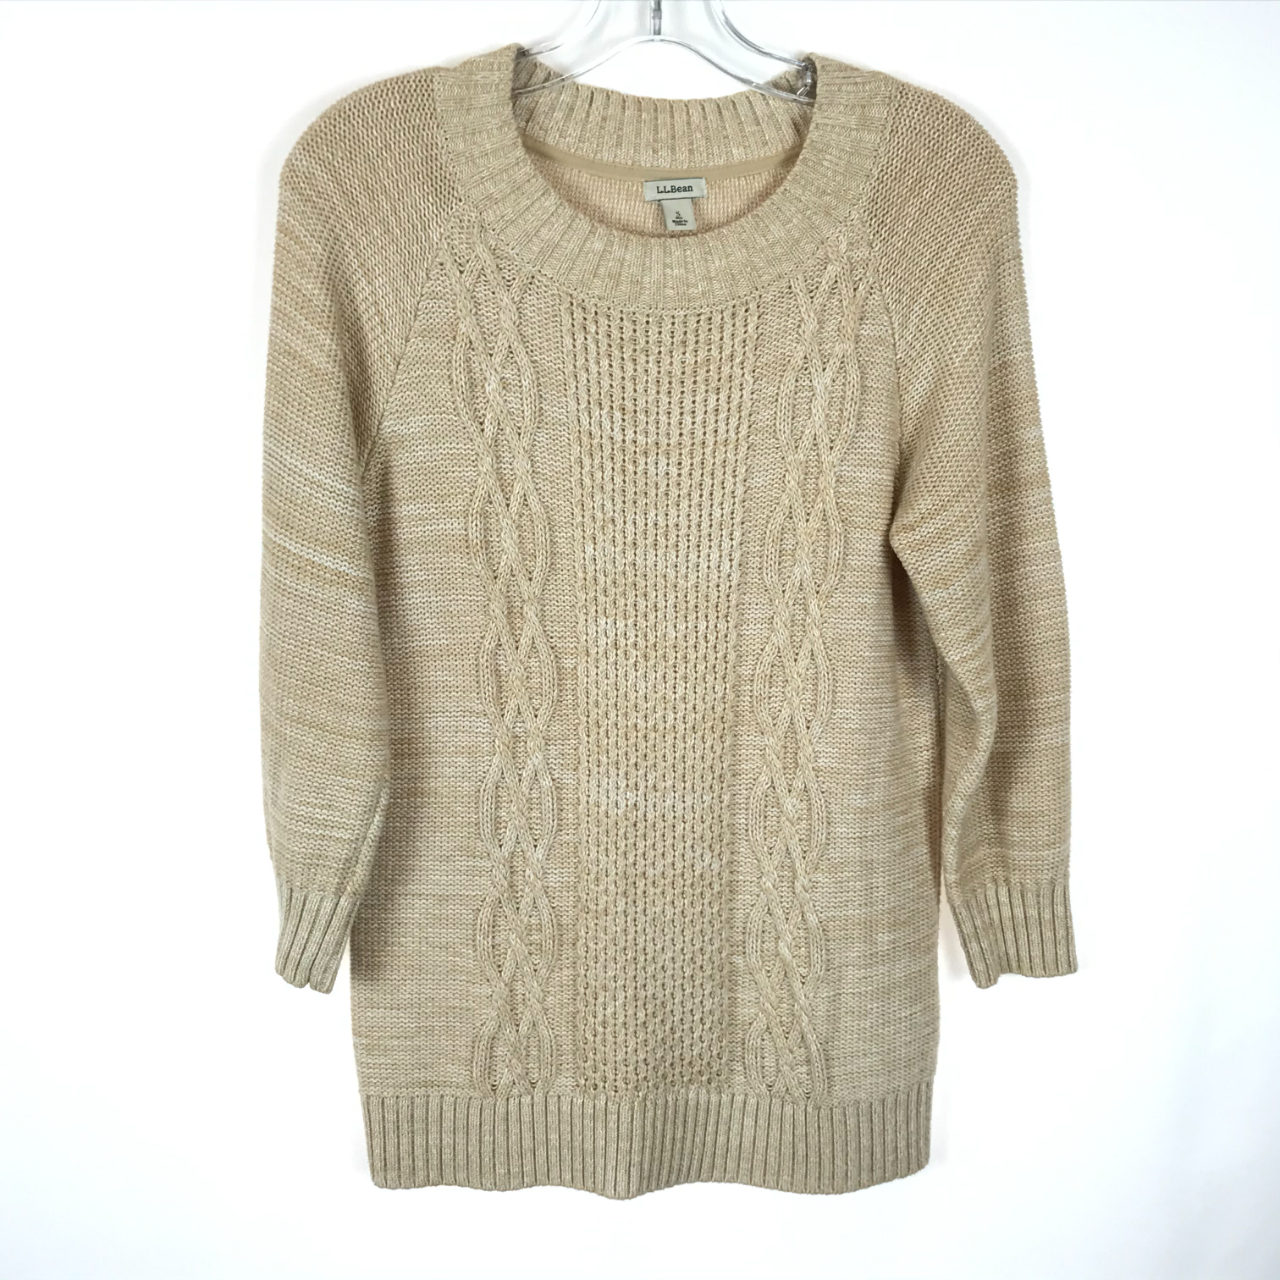 Product Image 1 - Cable Knit Pullover Sweater LL Bean  Crew